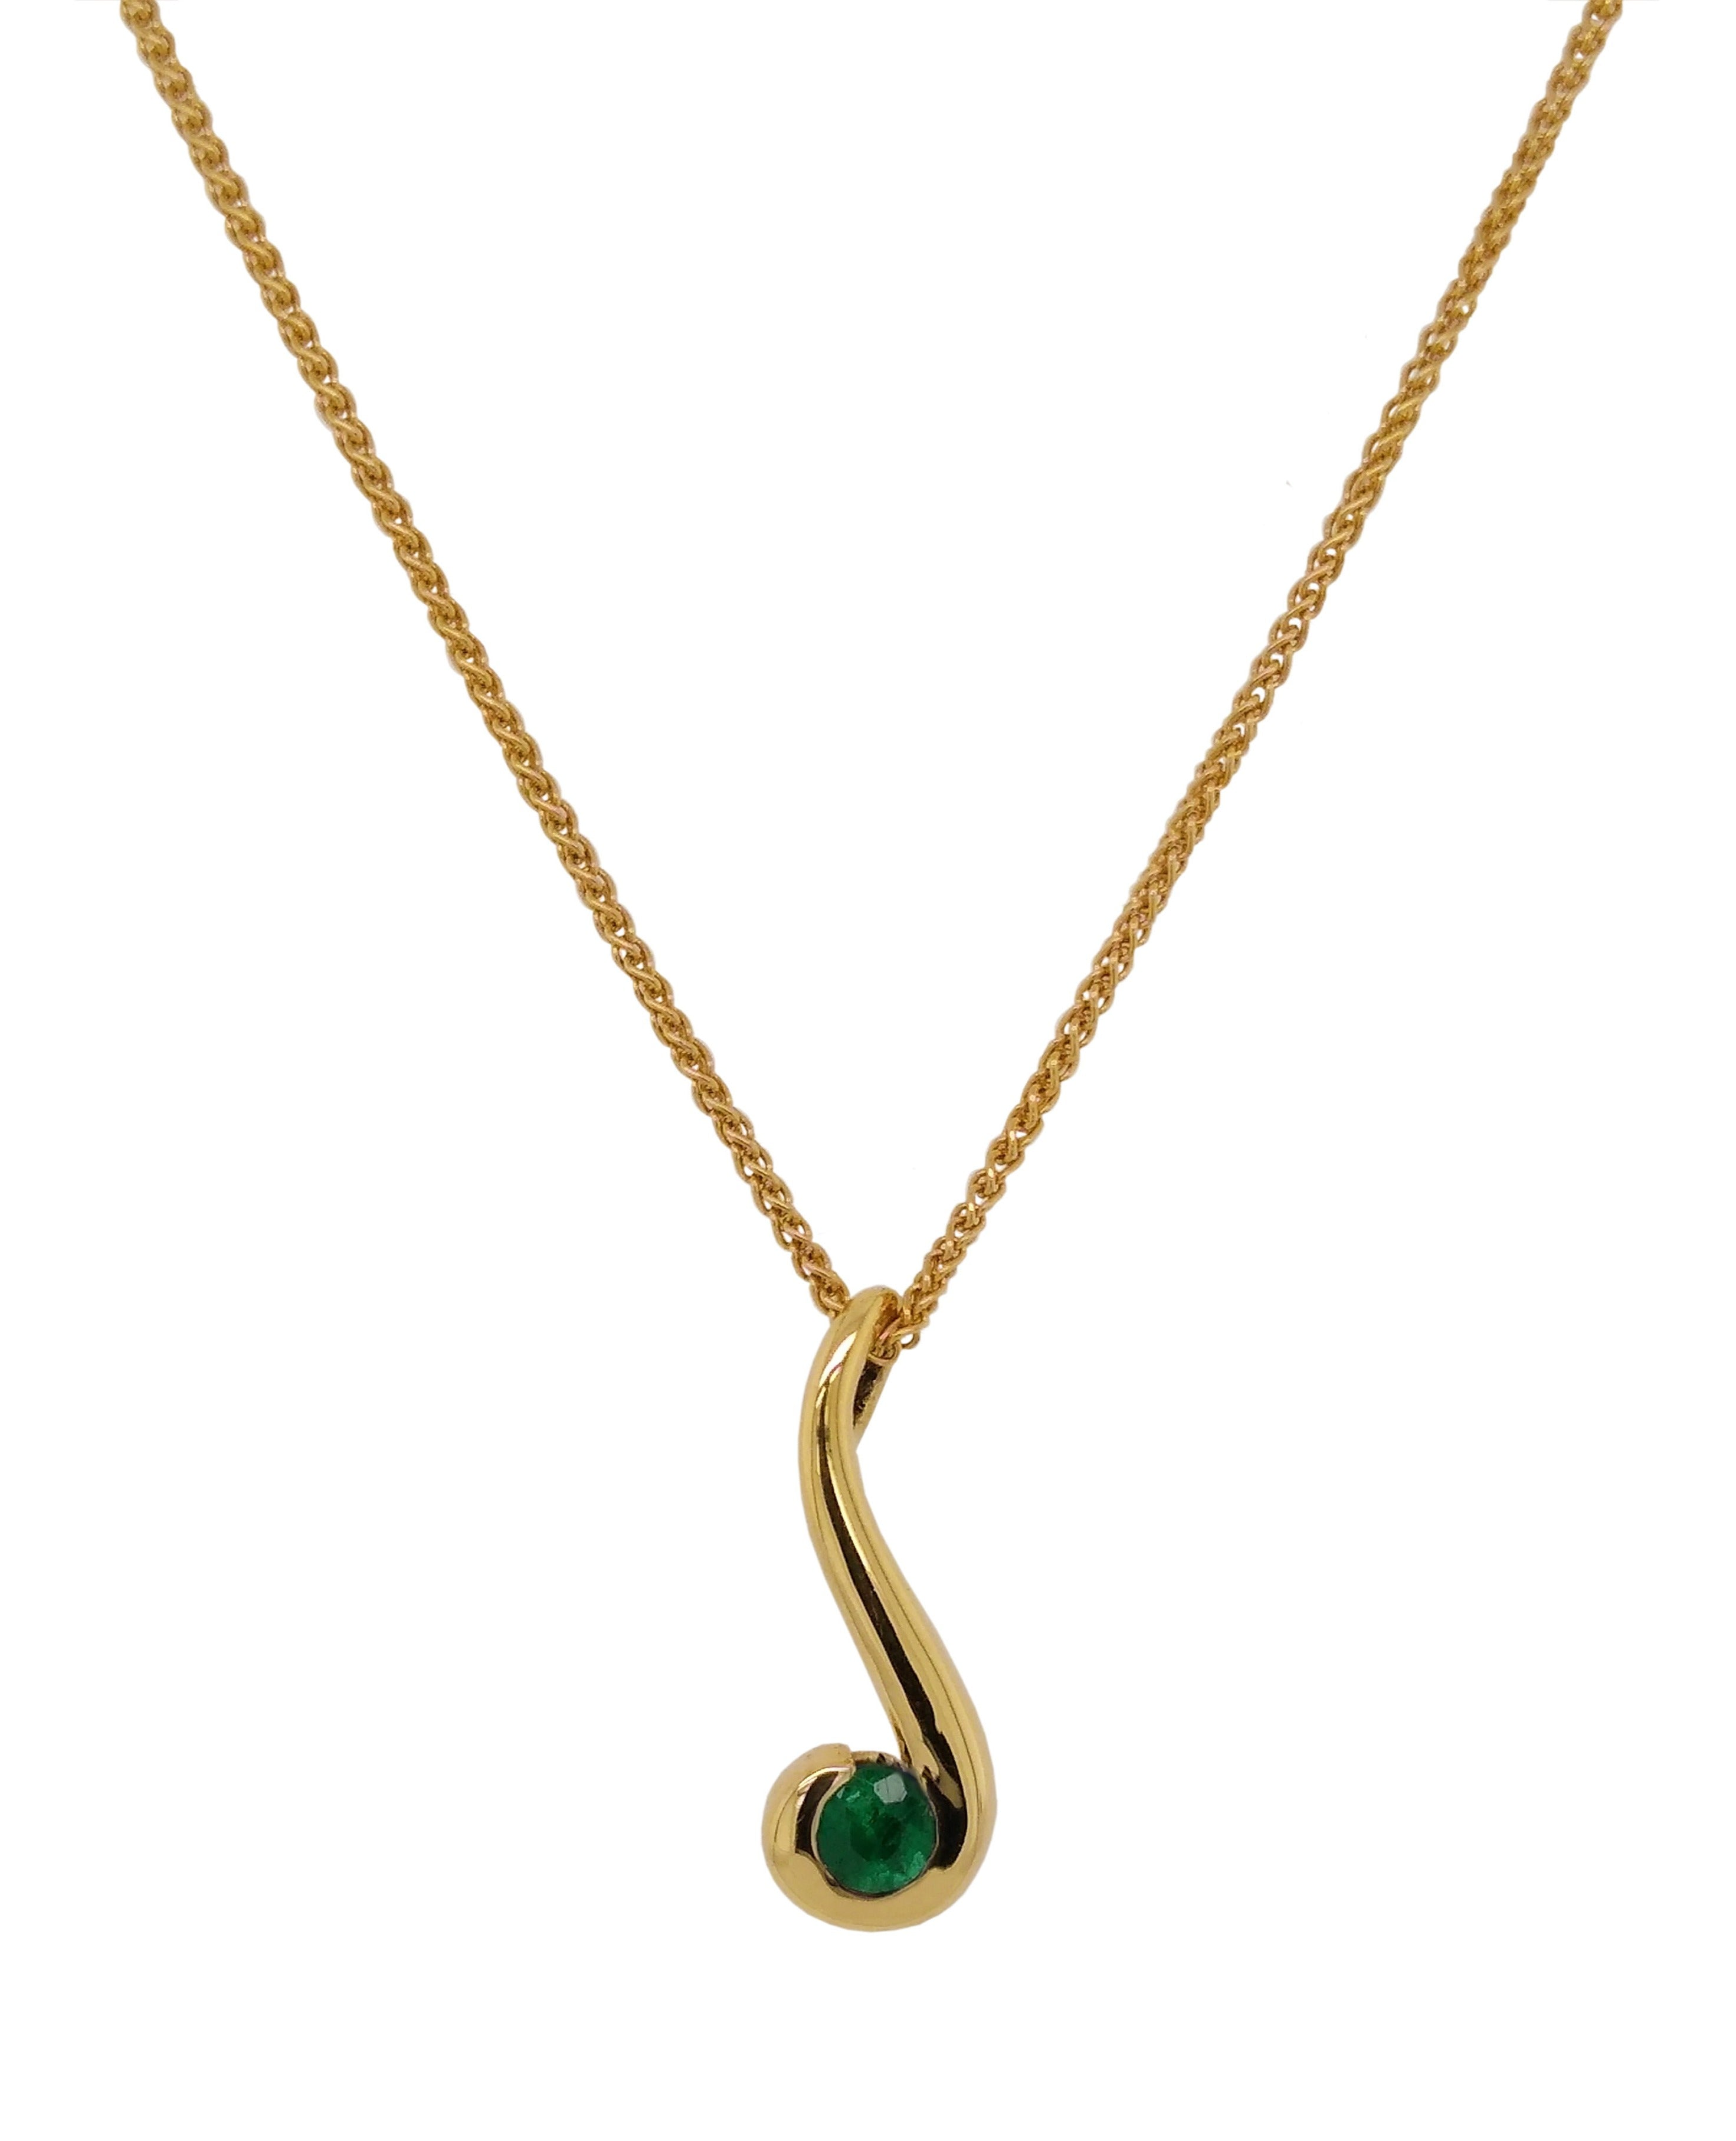 18ct Yellow Gold Colombian Emerald Curl Pendant & Chain